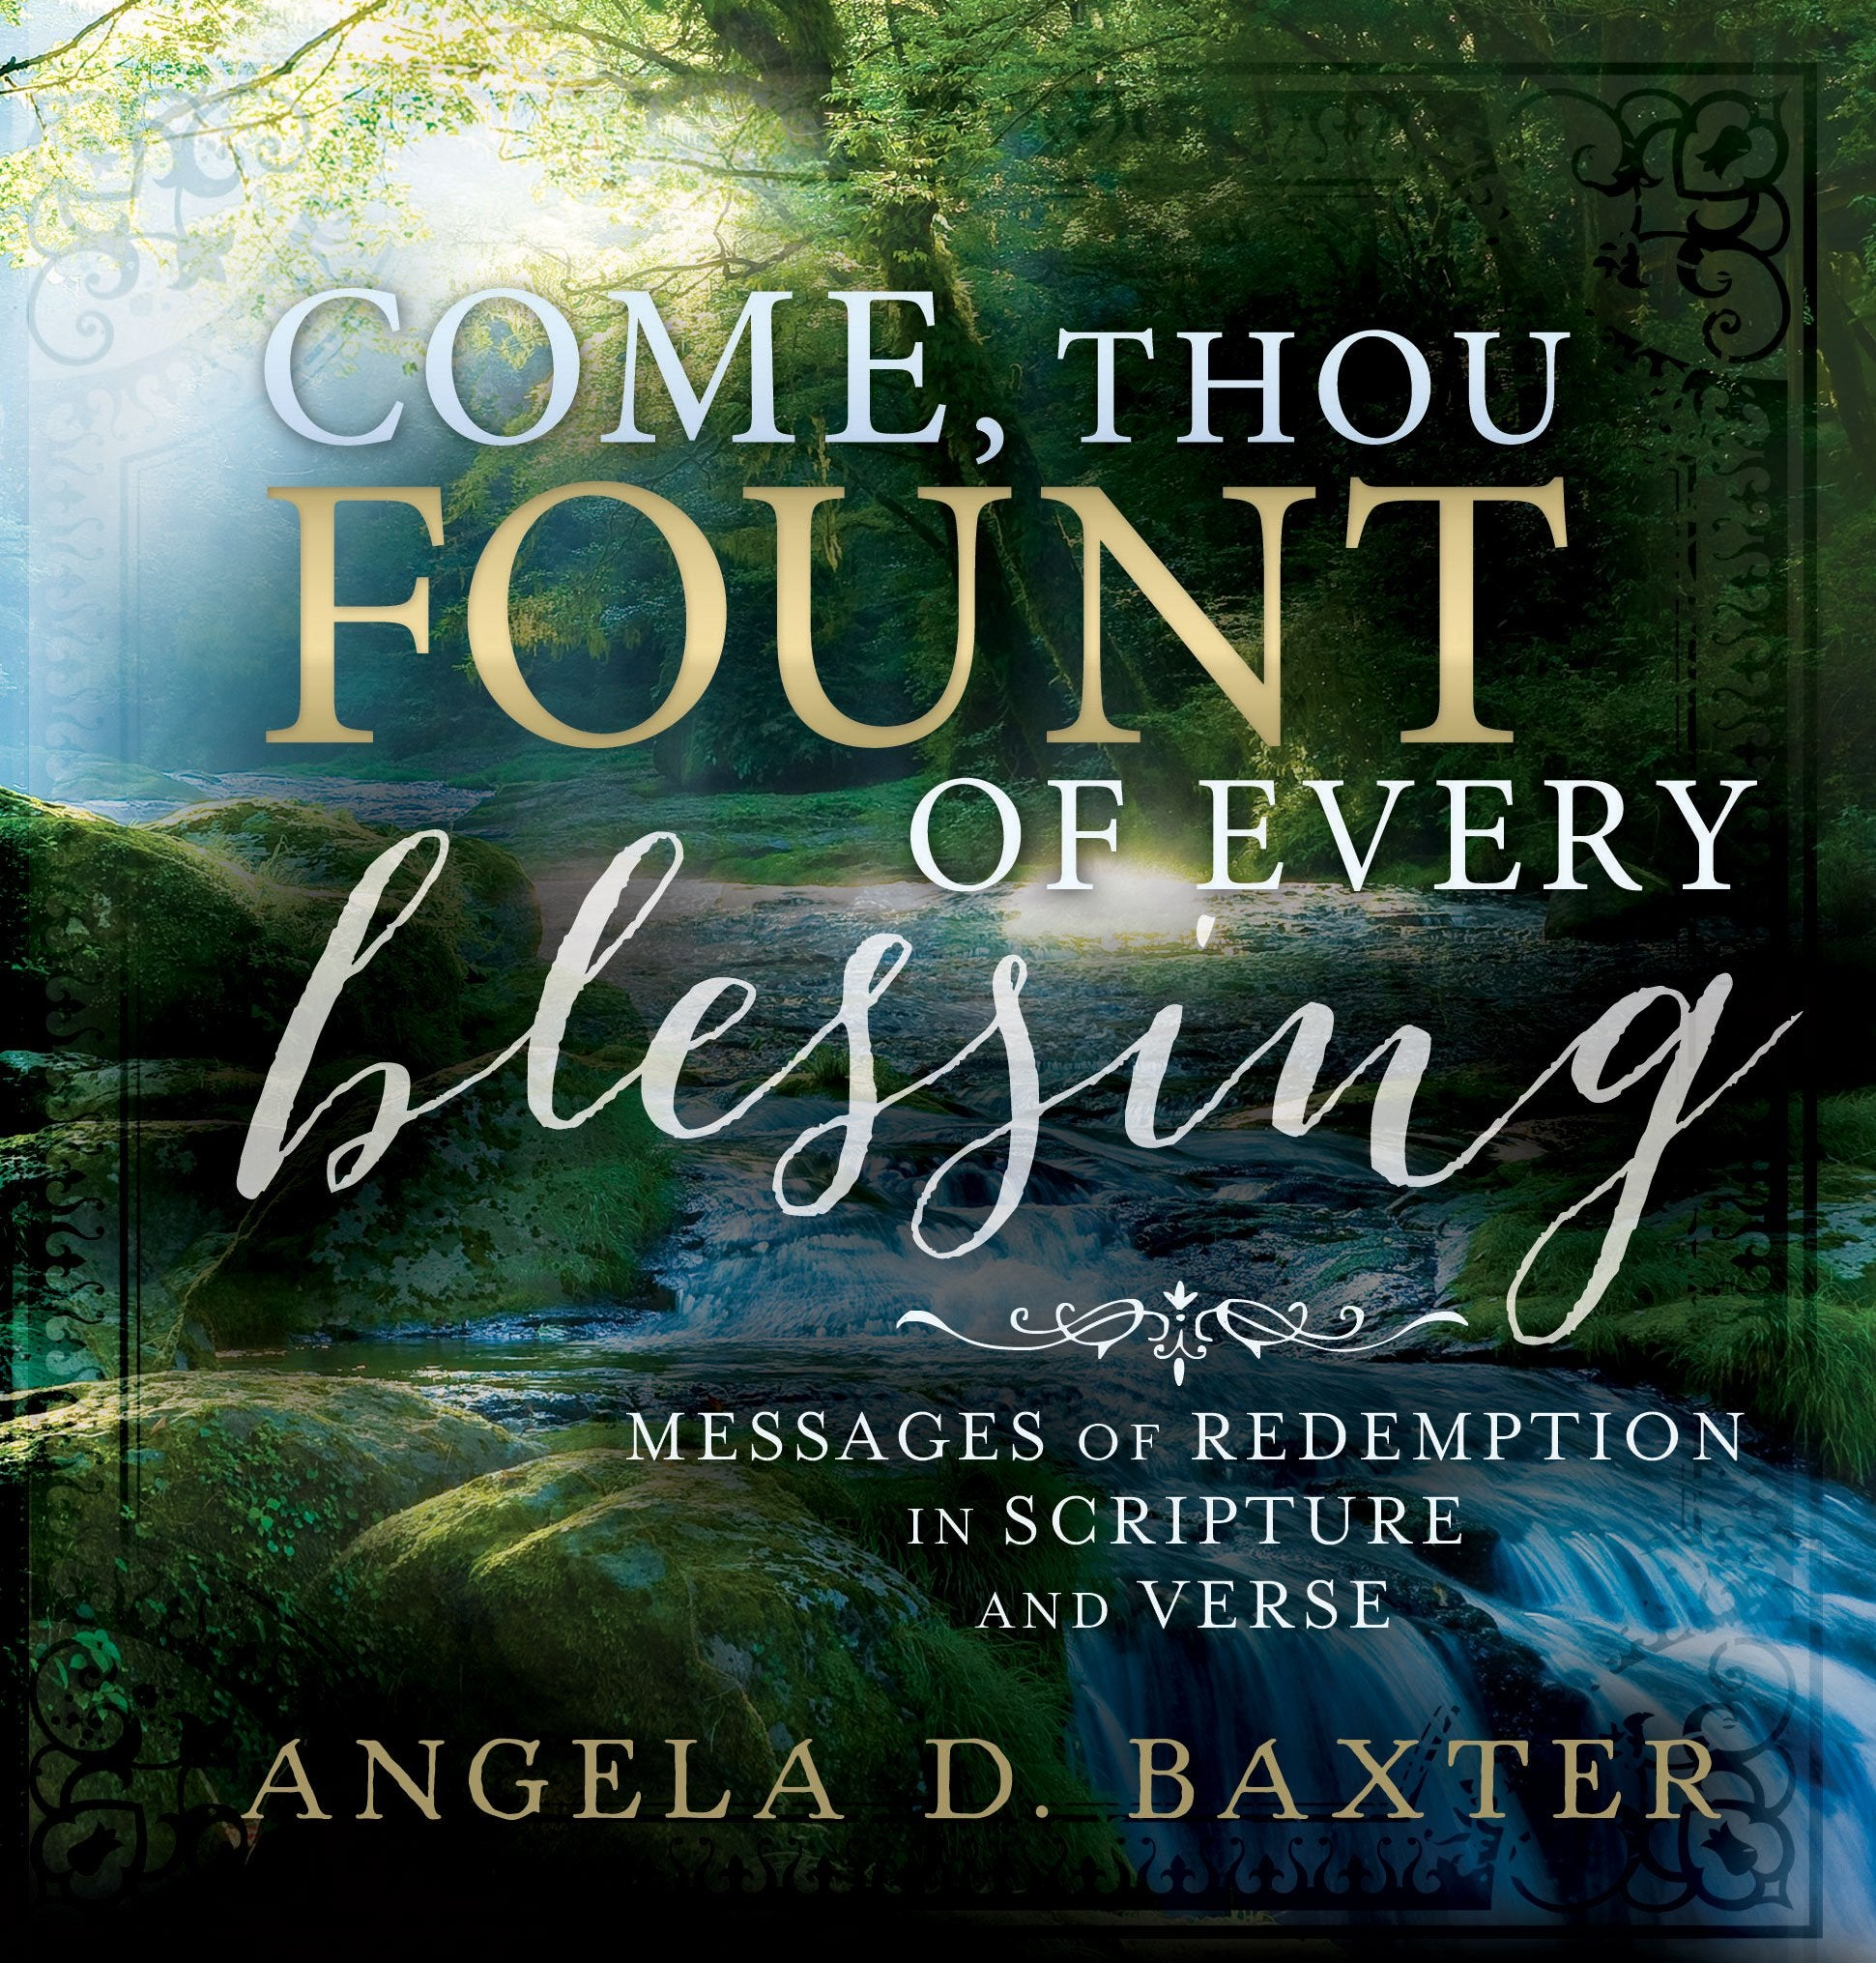 Come Thou Fount of Every Blessing: Messages of Redemption in Scripture and Verse - Hardcover